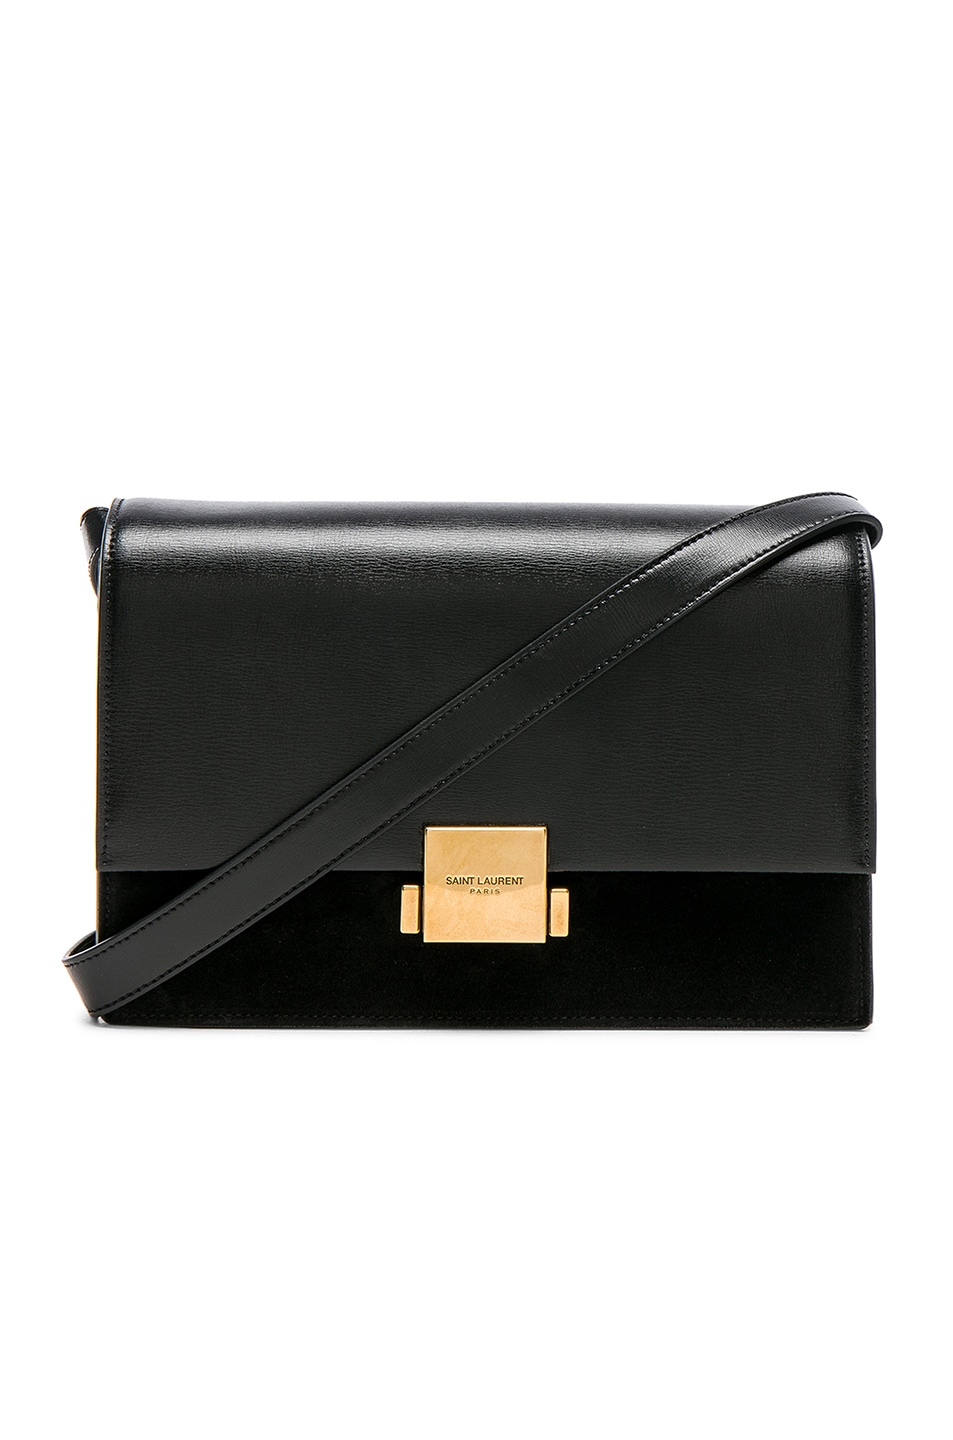 Image 1 of Saint Laurent Medium Bellechasse Satchel in Black